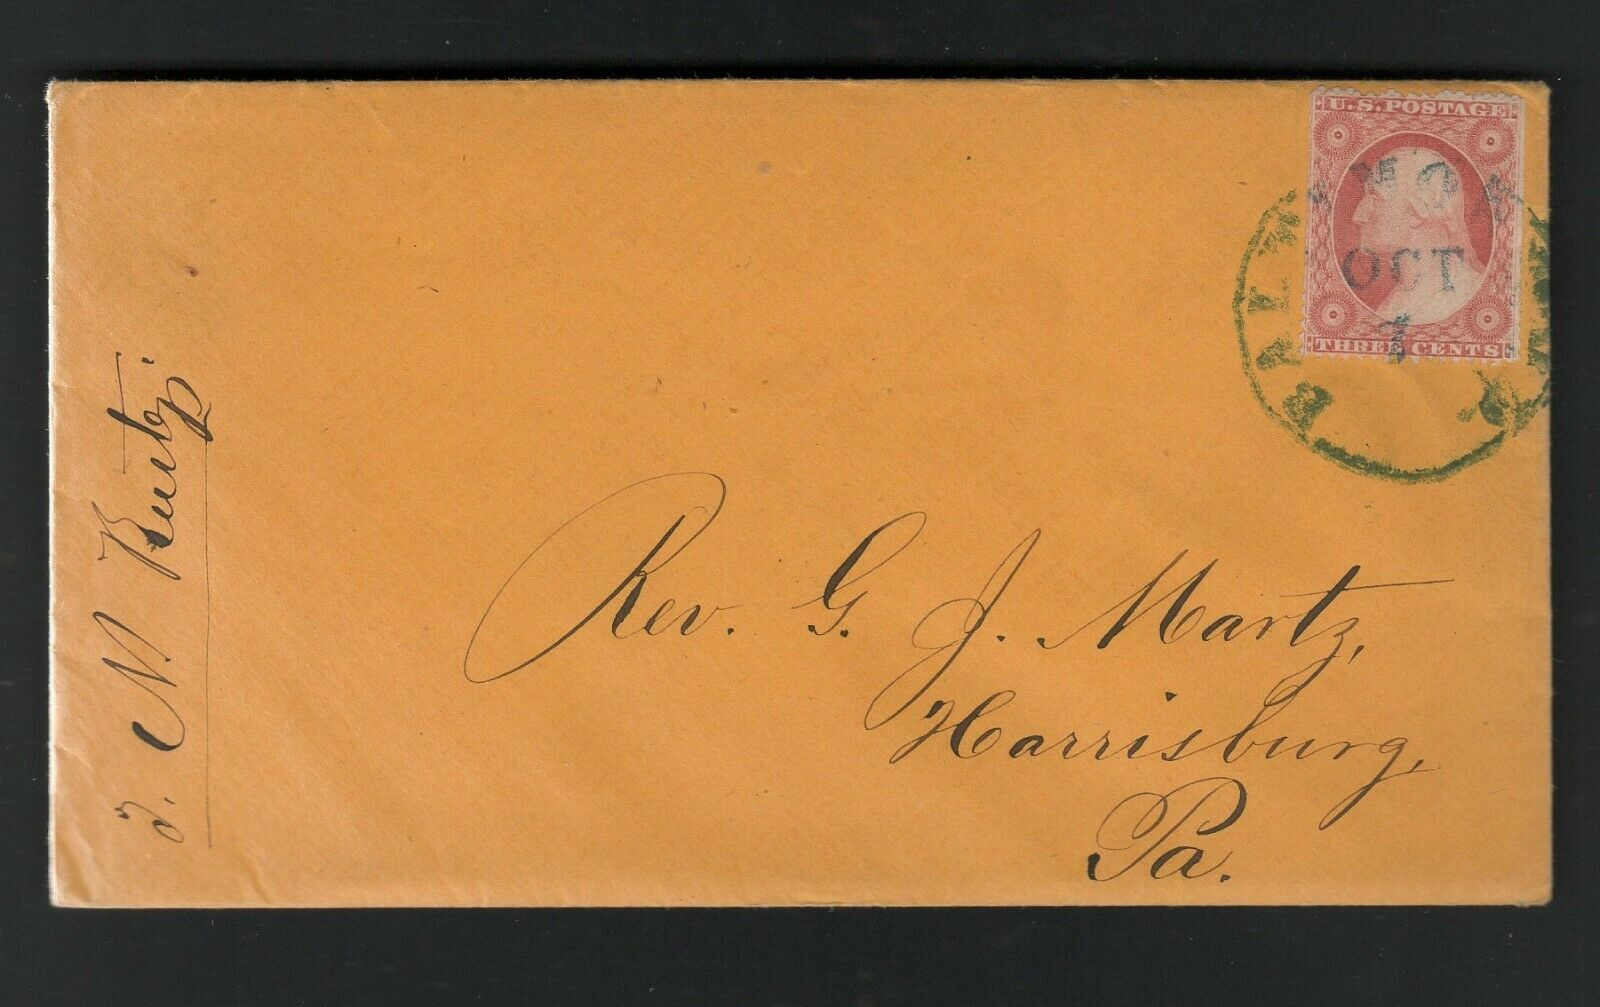 (599) on orange paper cover, 1859, letter enclosed, Free Shipping